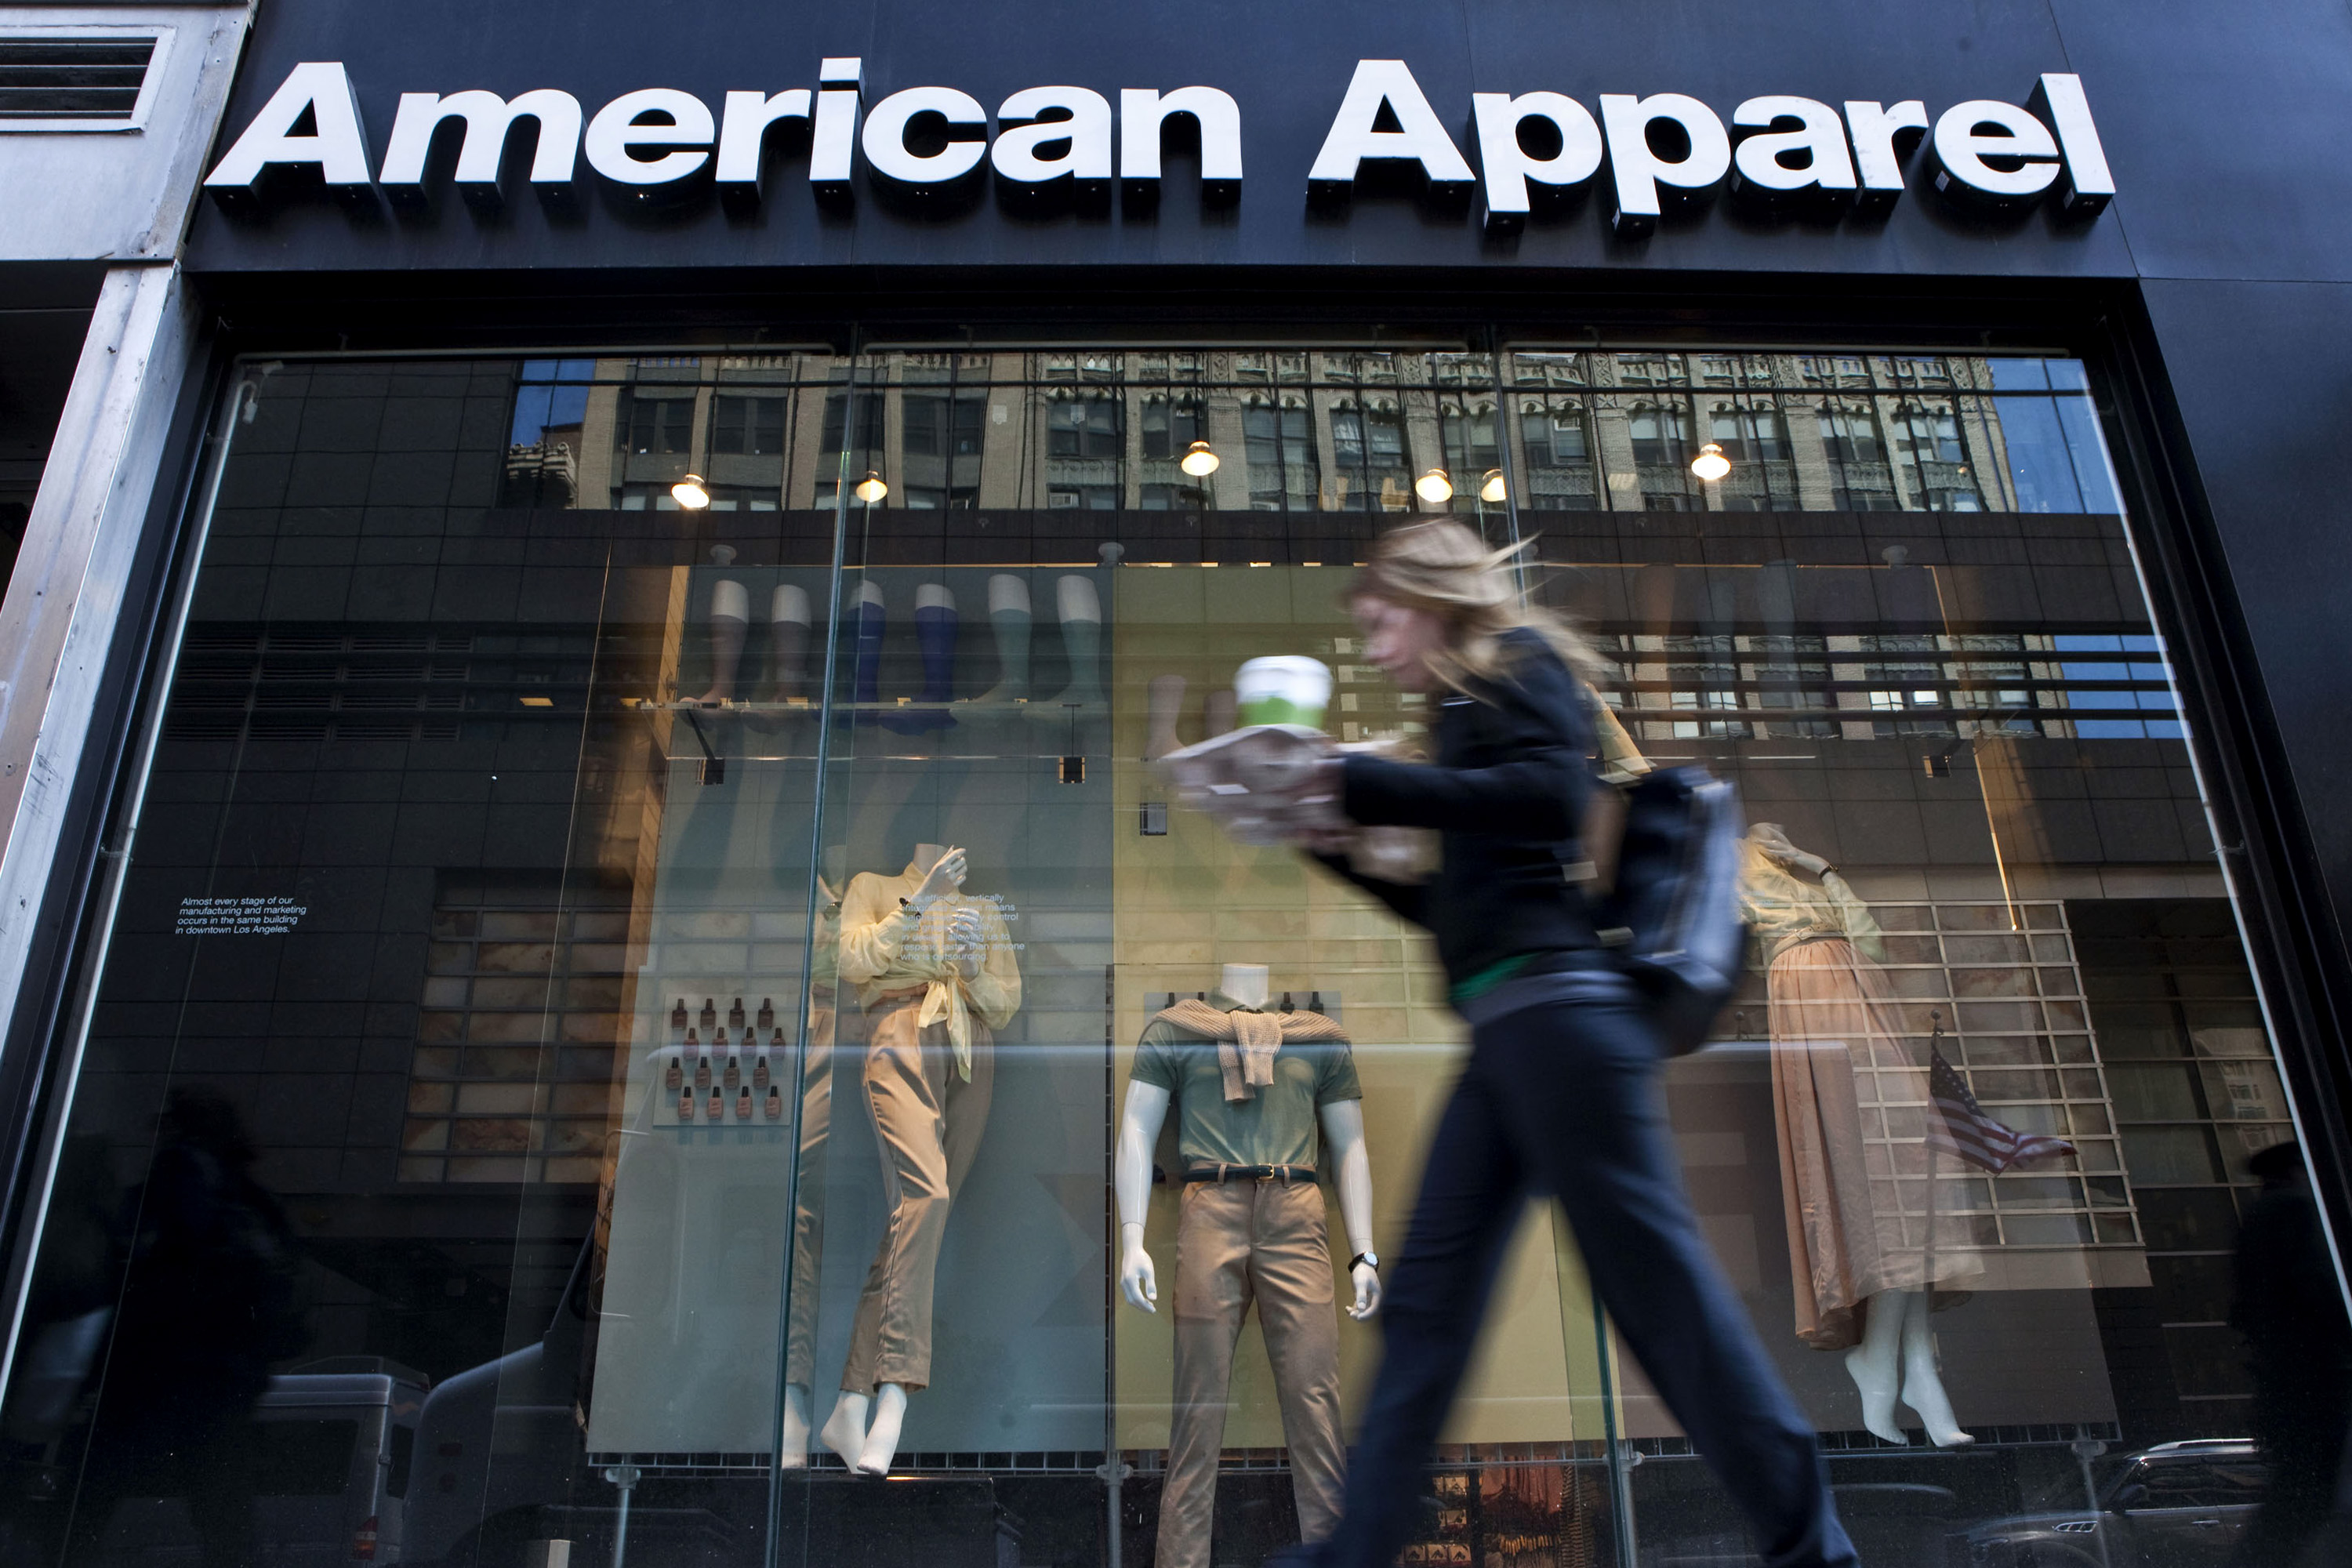 American Apparel Glamour Fades As Losses Spur Cash Crunch